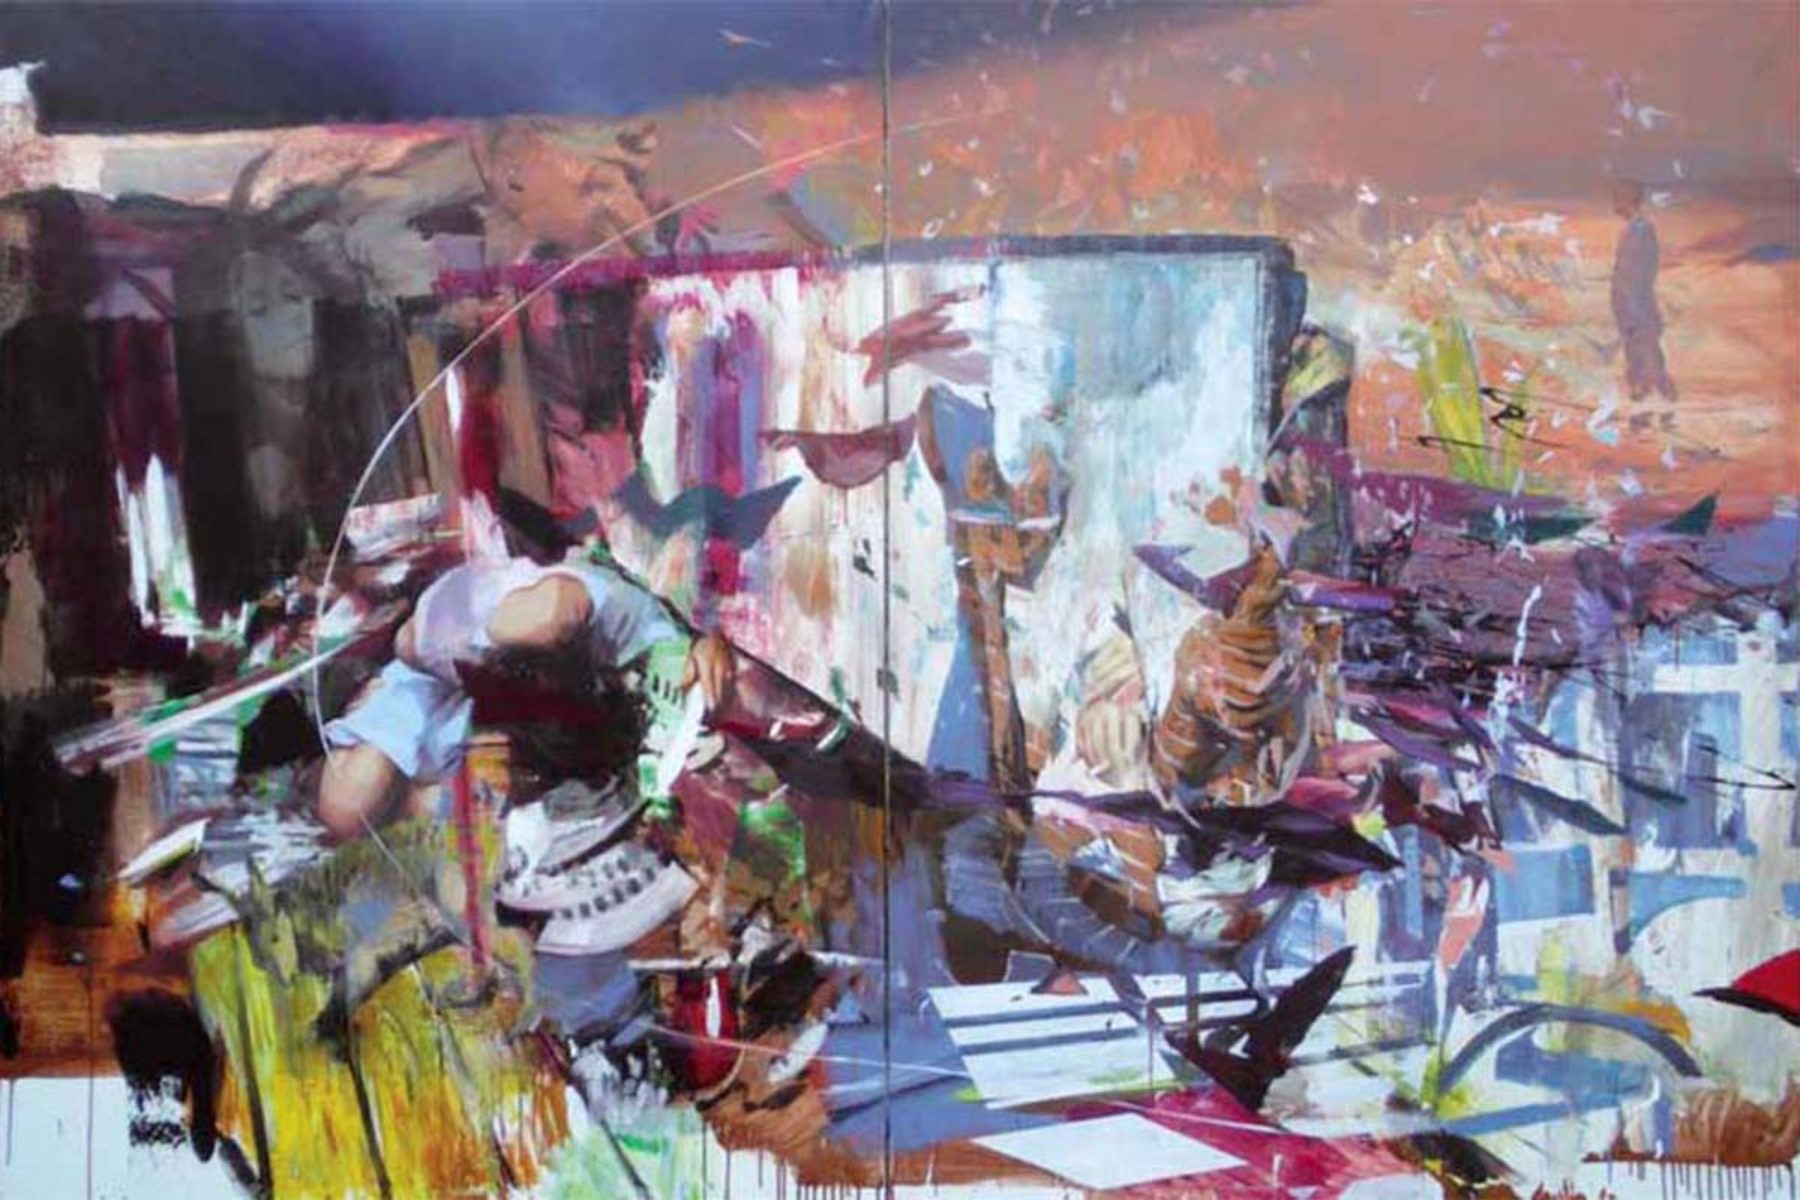 Giuseppe Gonella, Ancient reef, 2010, acrylic on canvas, 200 x 300 cm